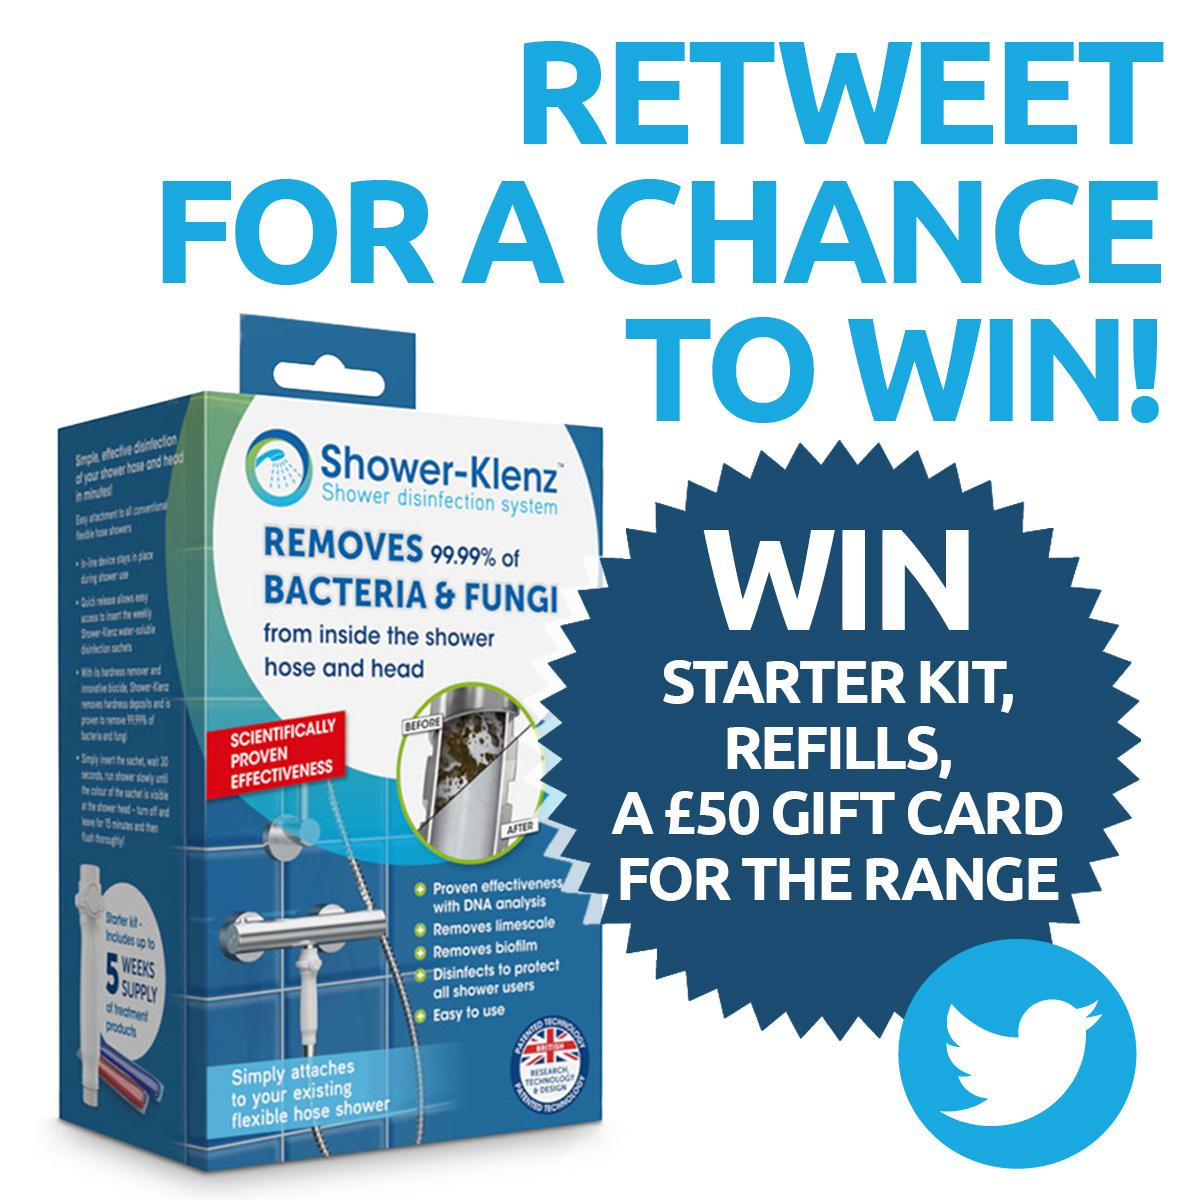 Kick start your #SpringClean with @ShowerKlenz and The Range! RT to win a Shower-Klenz Bundle. #competition #win http://t.co/HfOKZetzJt